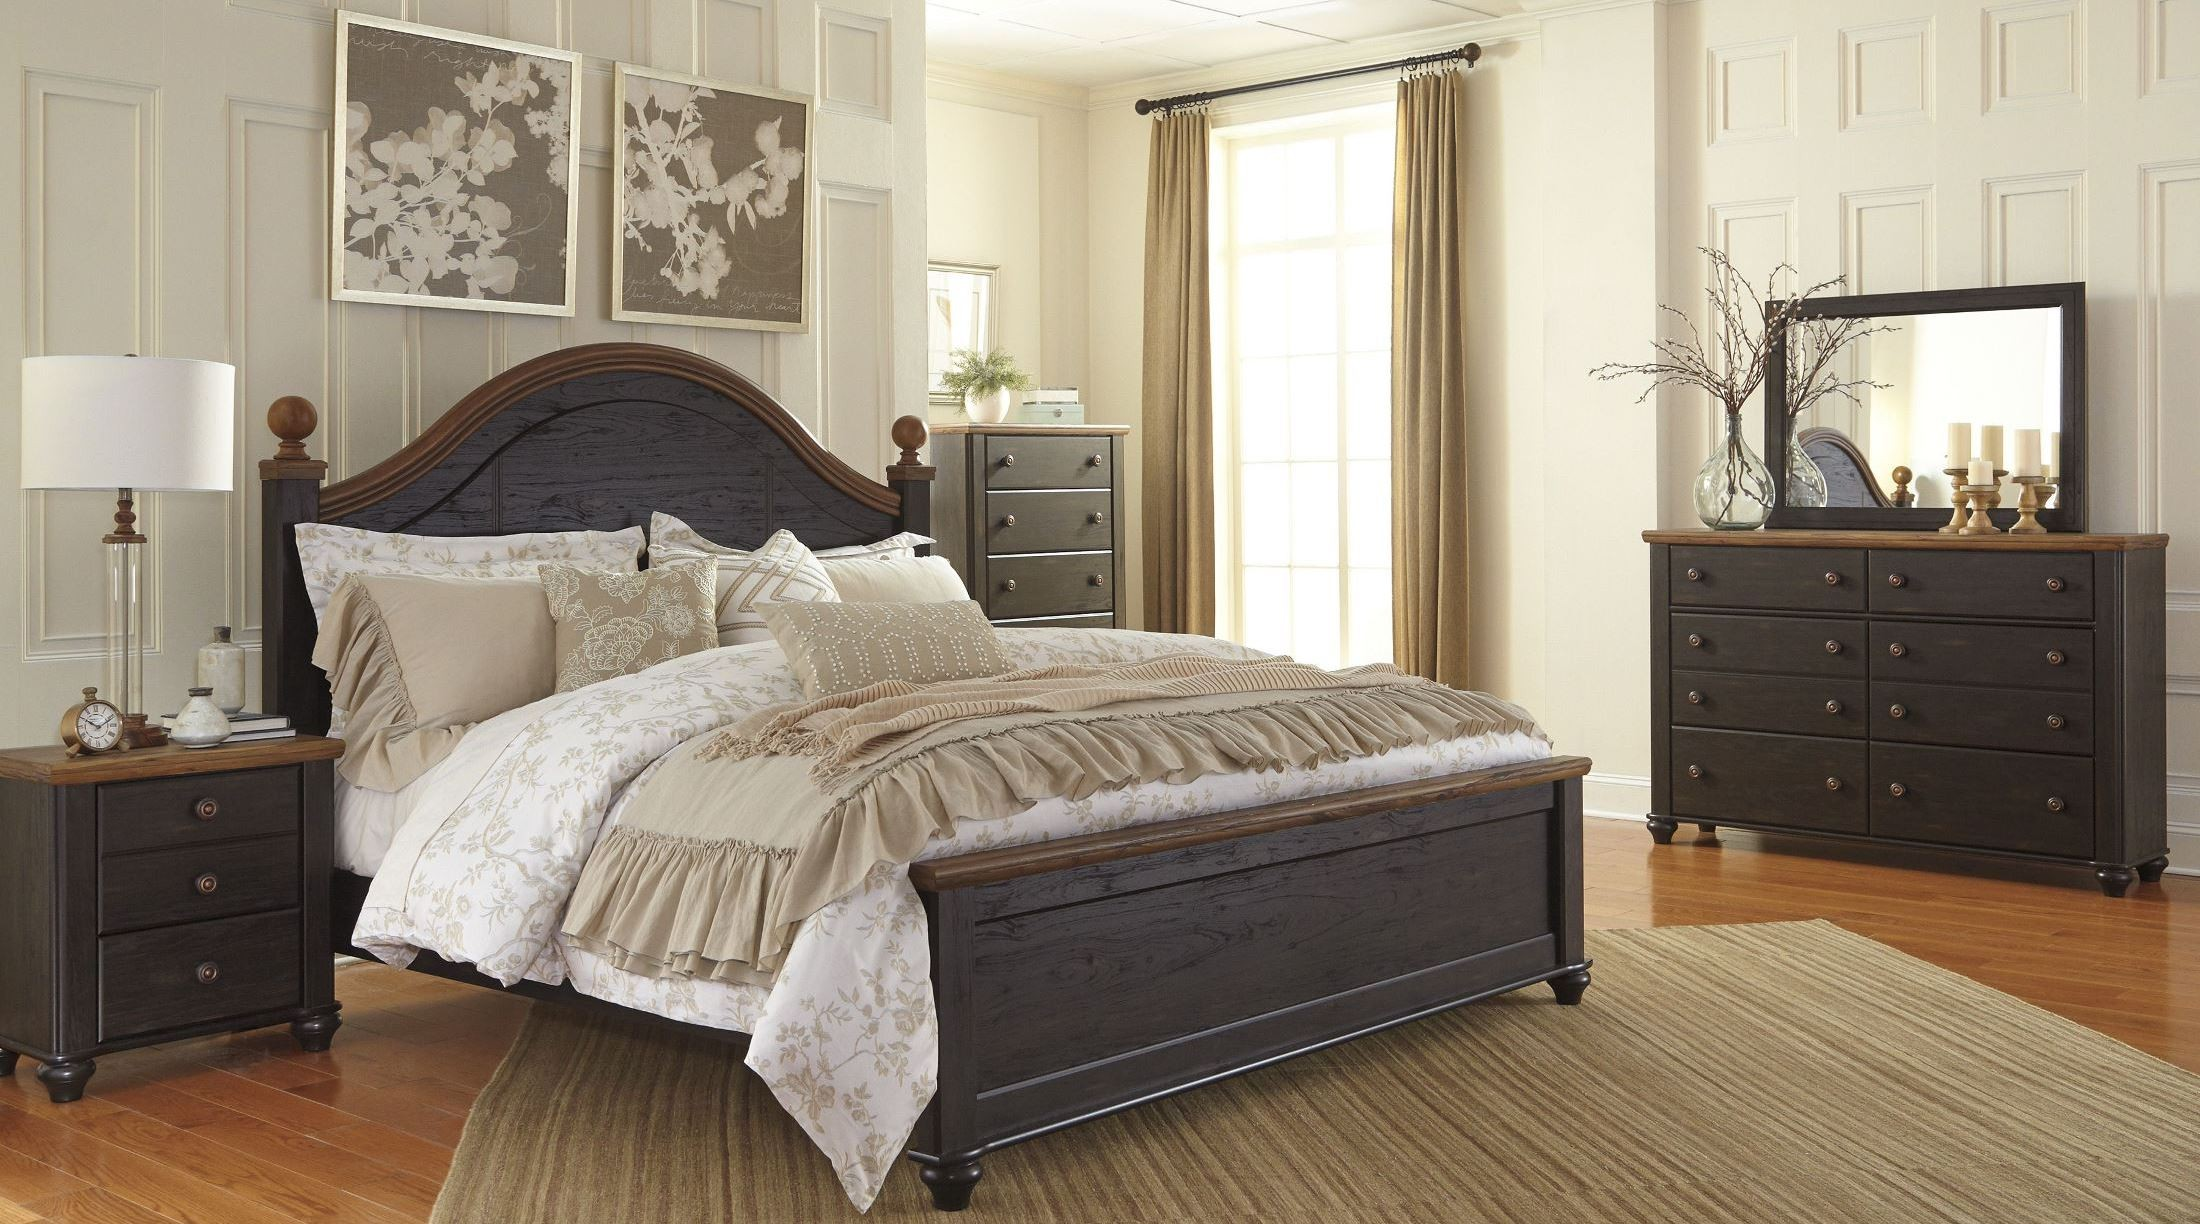 Maxington Black And Reddish Brown Panel Bedroom Set From Ashley B220 67 54 95 Coleman Furniture